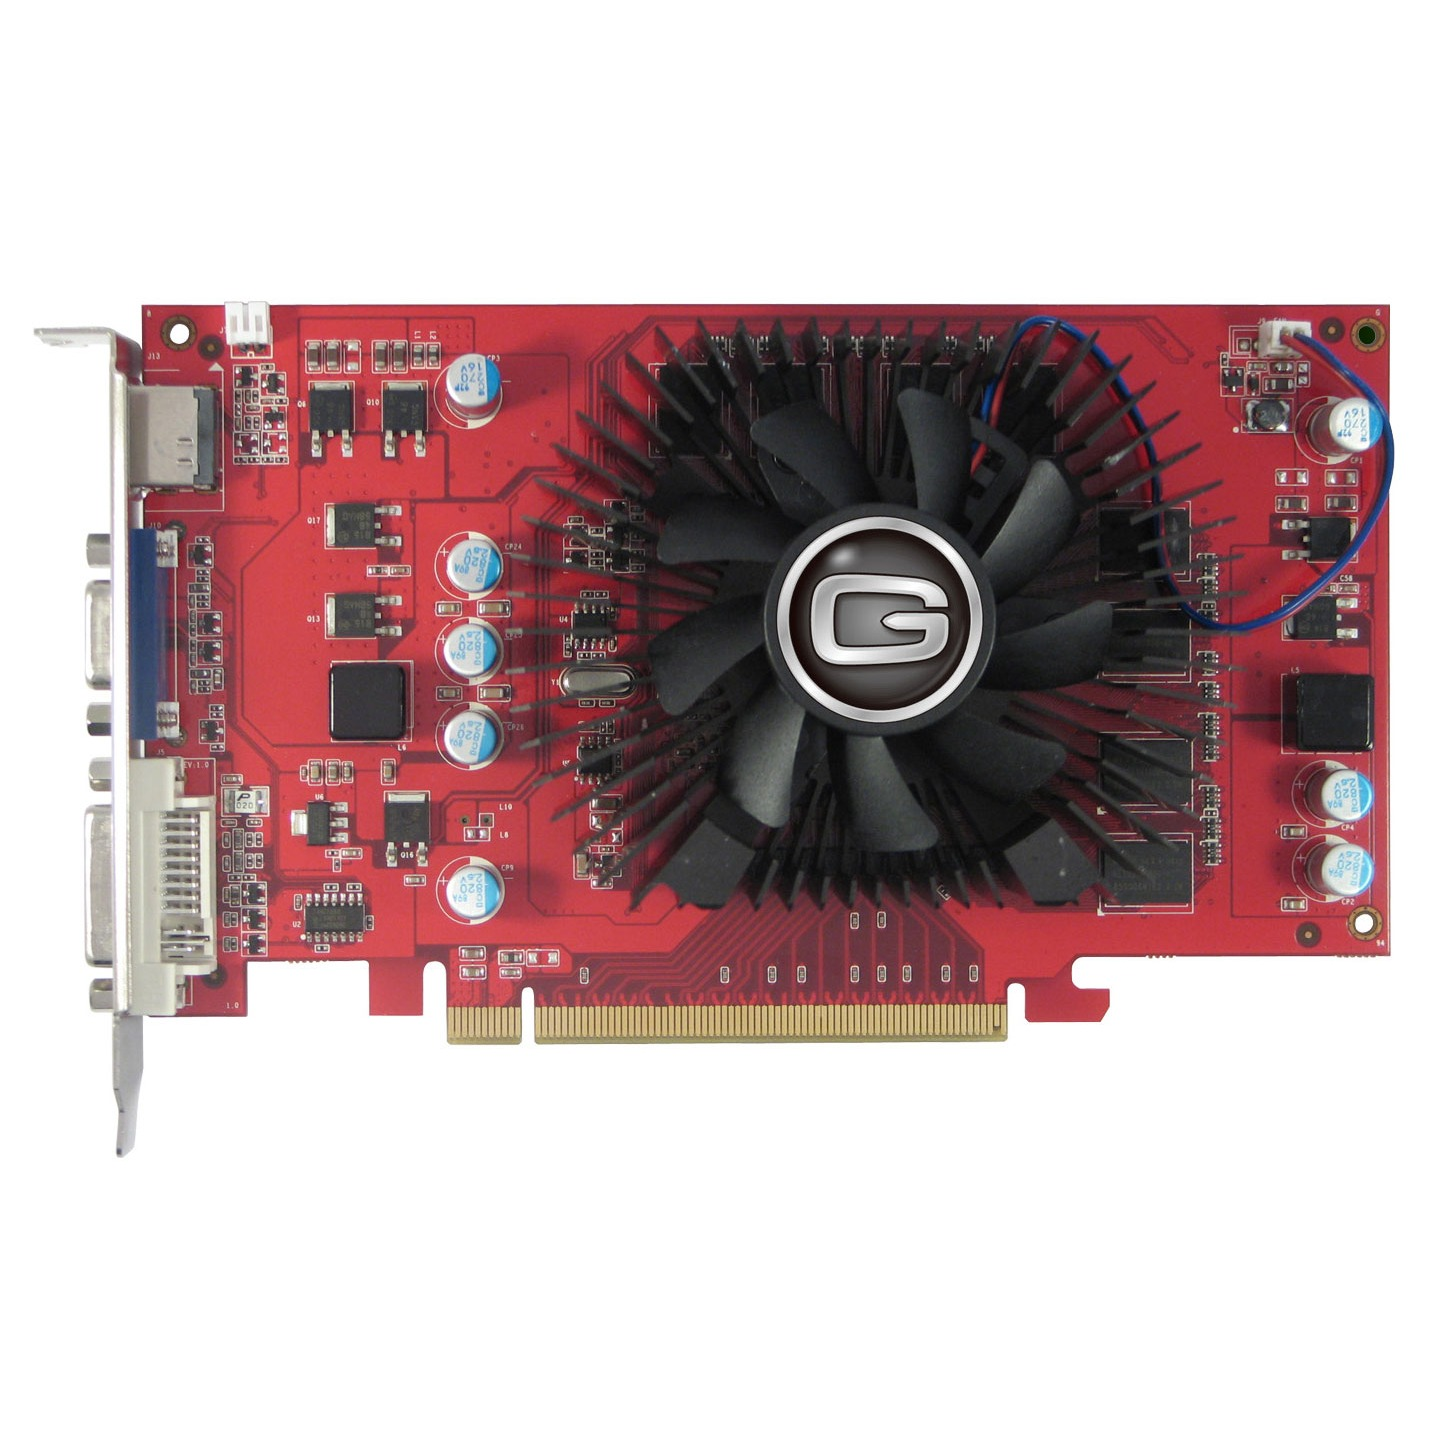 pilote carte graphique nvidia geforce 9600 gt